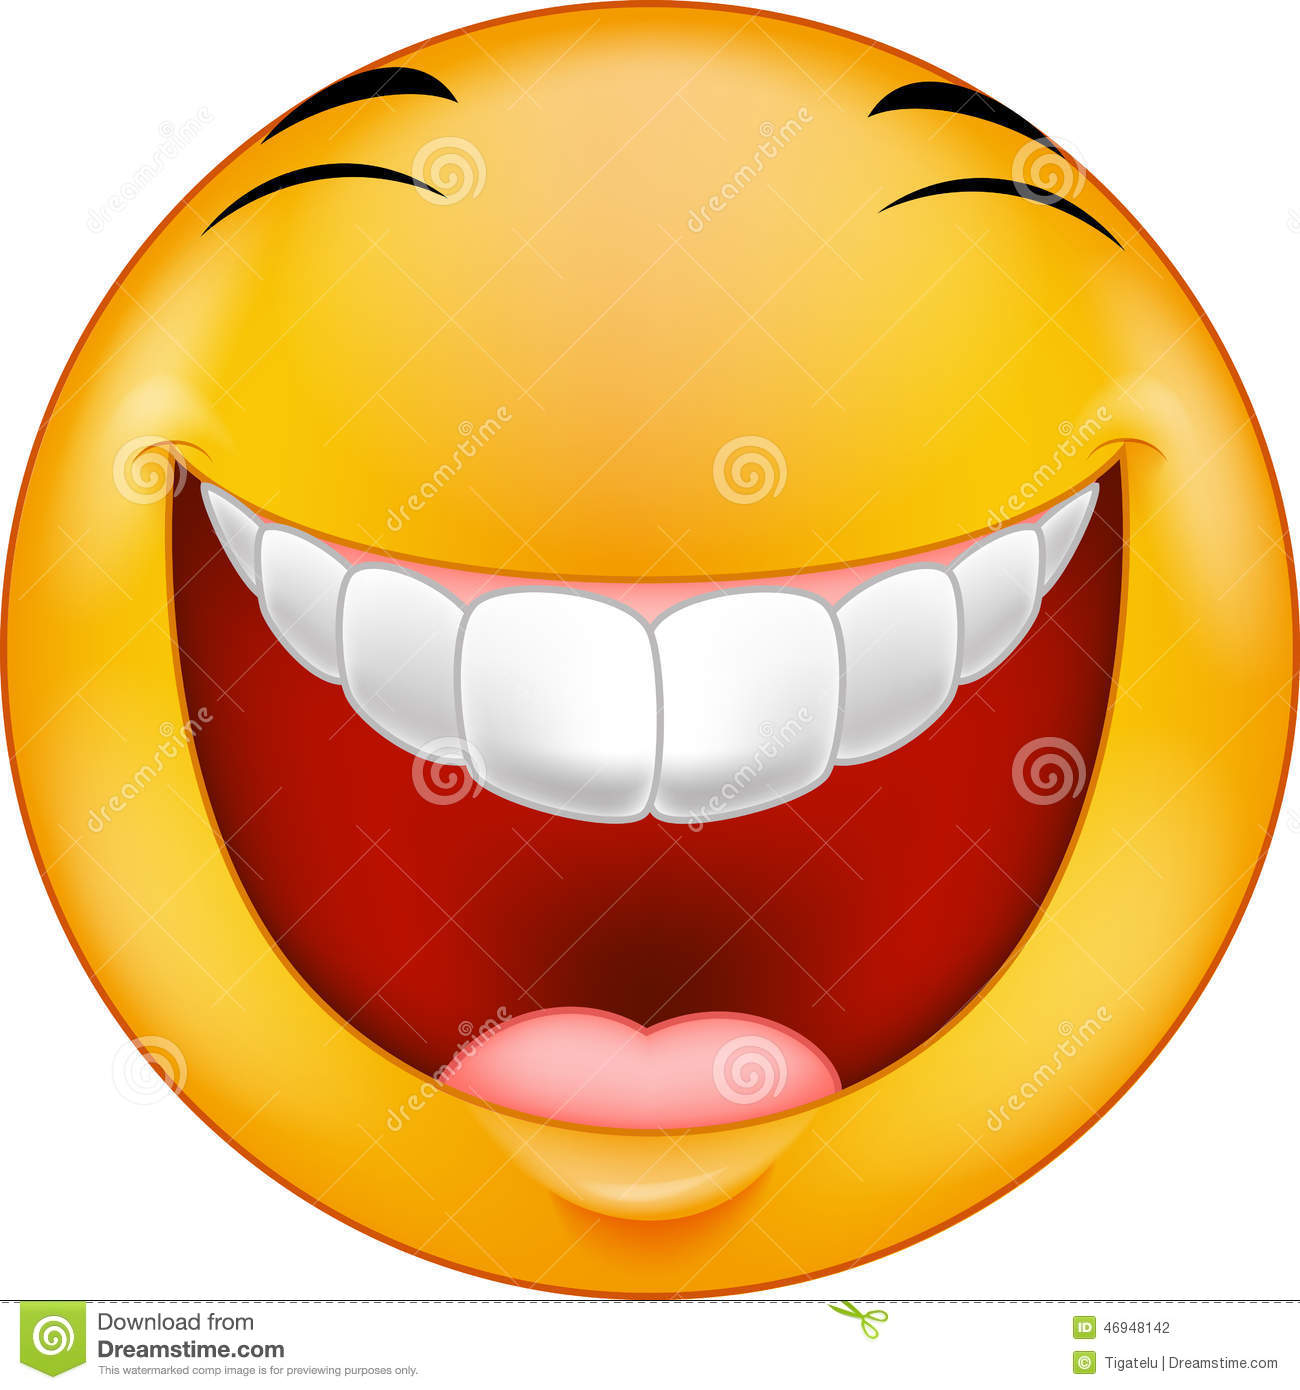 laughing faces cartoon - photo #13